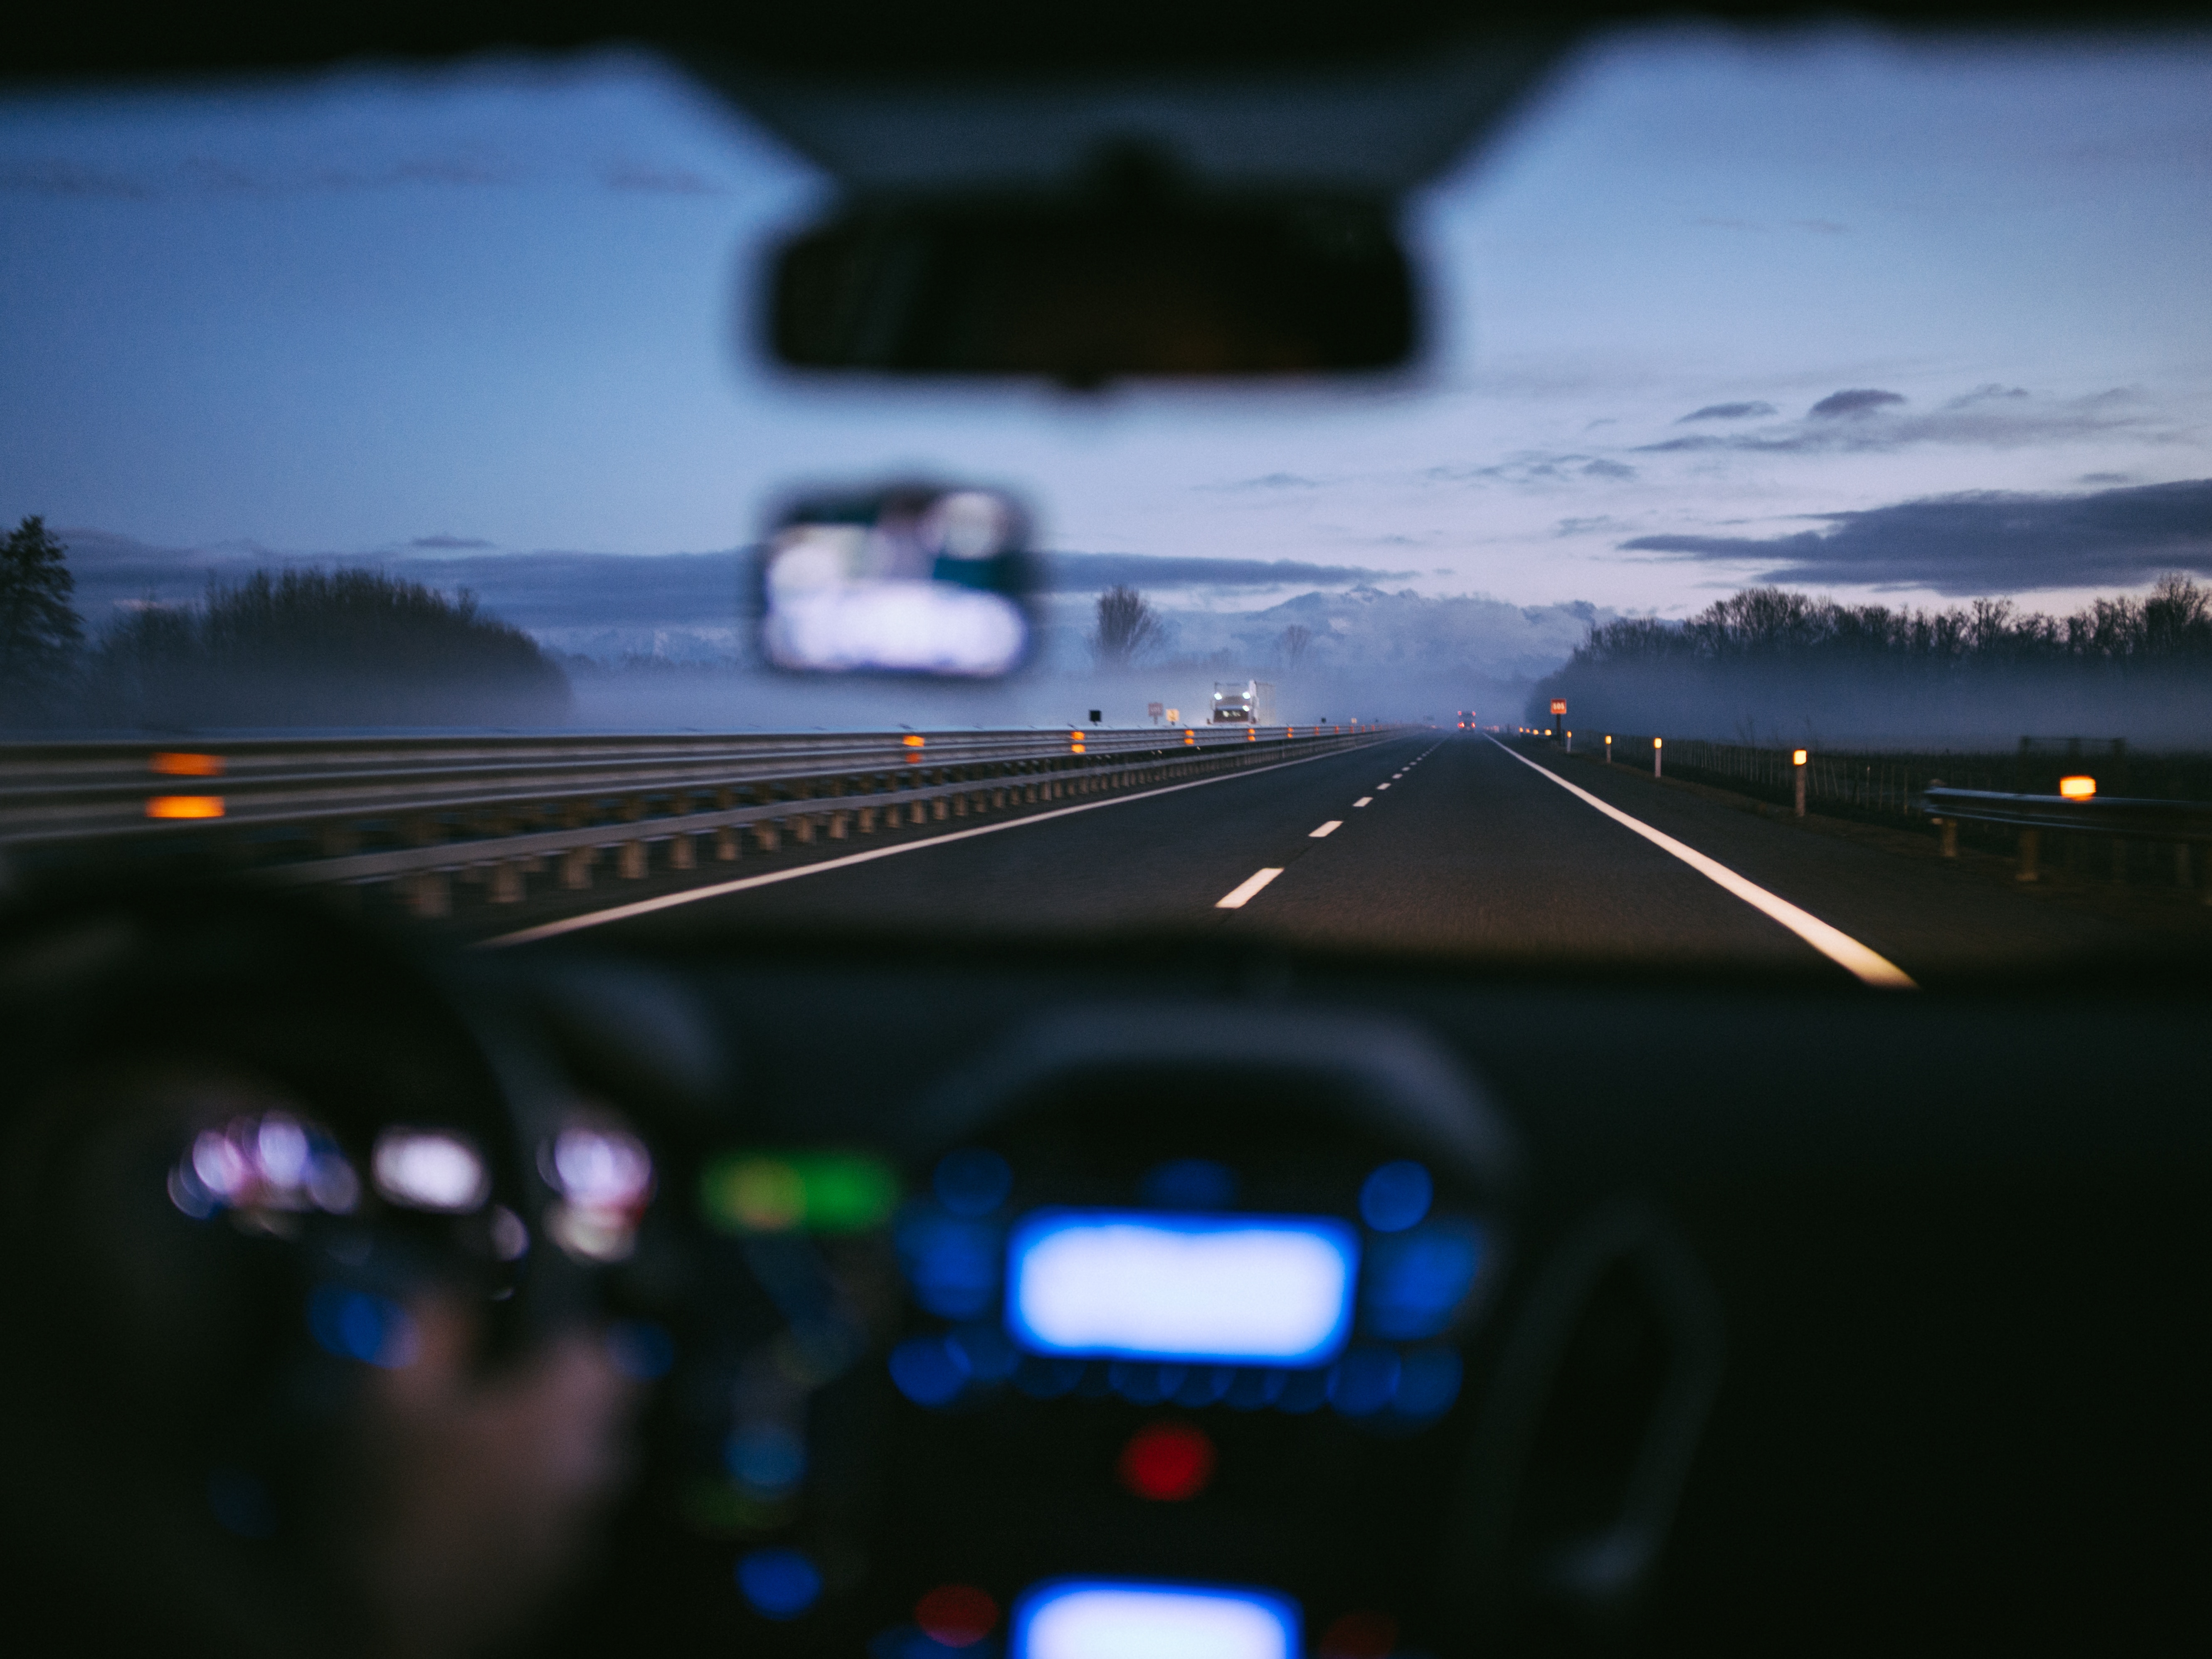 Driving at night looking through windshield